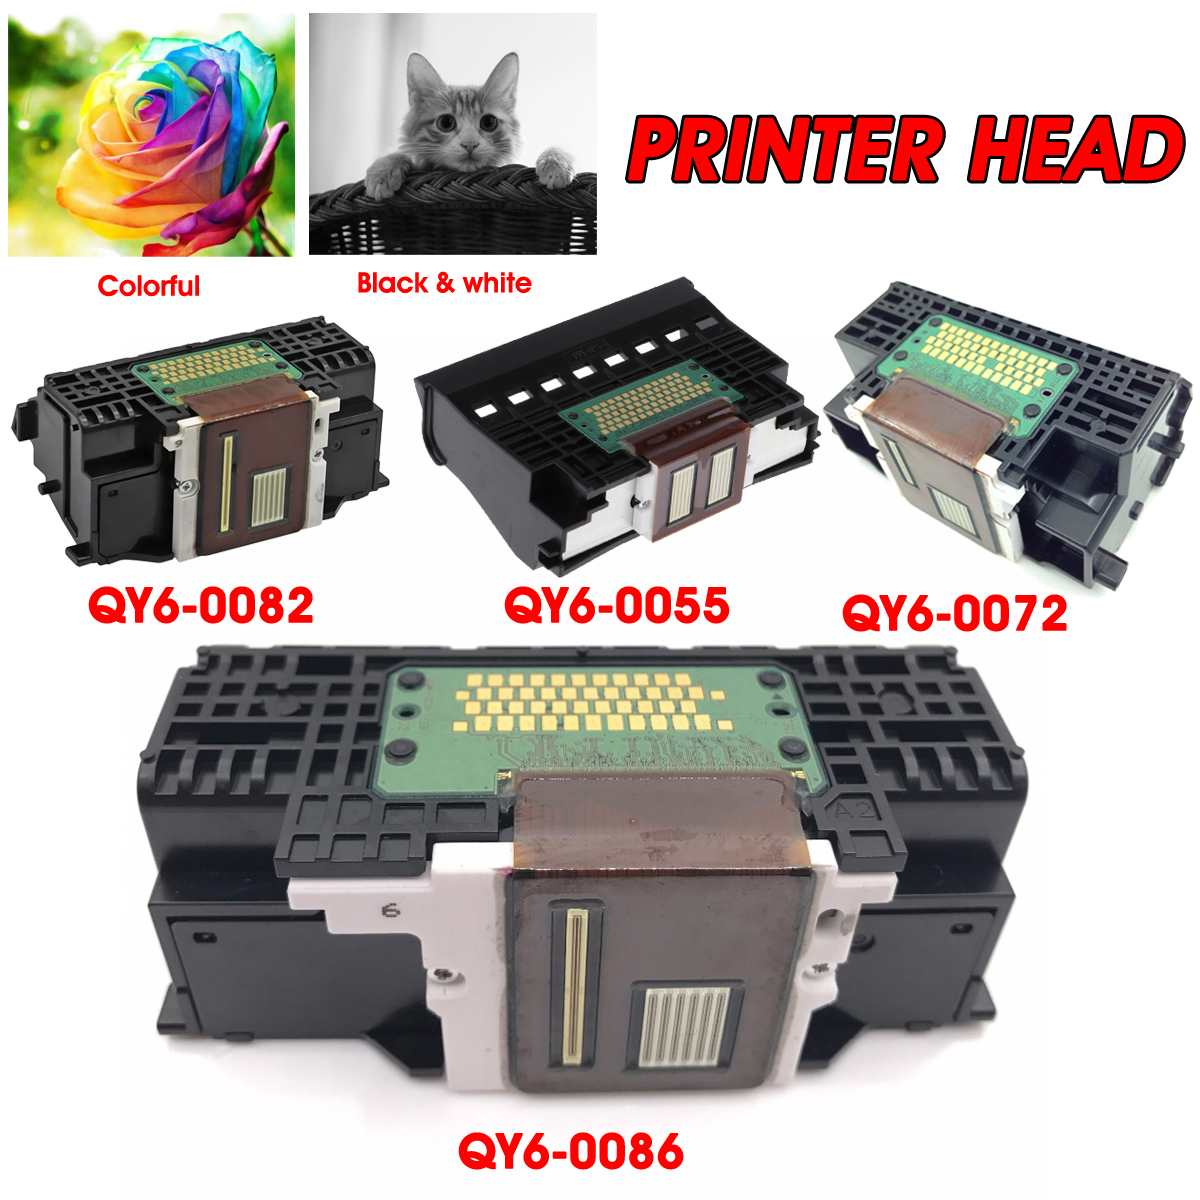 LEORY QY6-0055/QY6-0072/QY6-0082/QY6-0086 Printer Head Printing Spare Parts For Canon IP8500 IP7220 MX922 IP4600 MP640 Pro9000